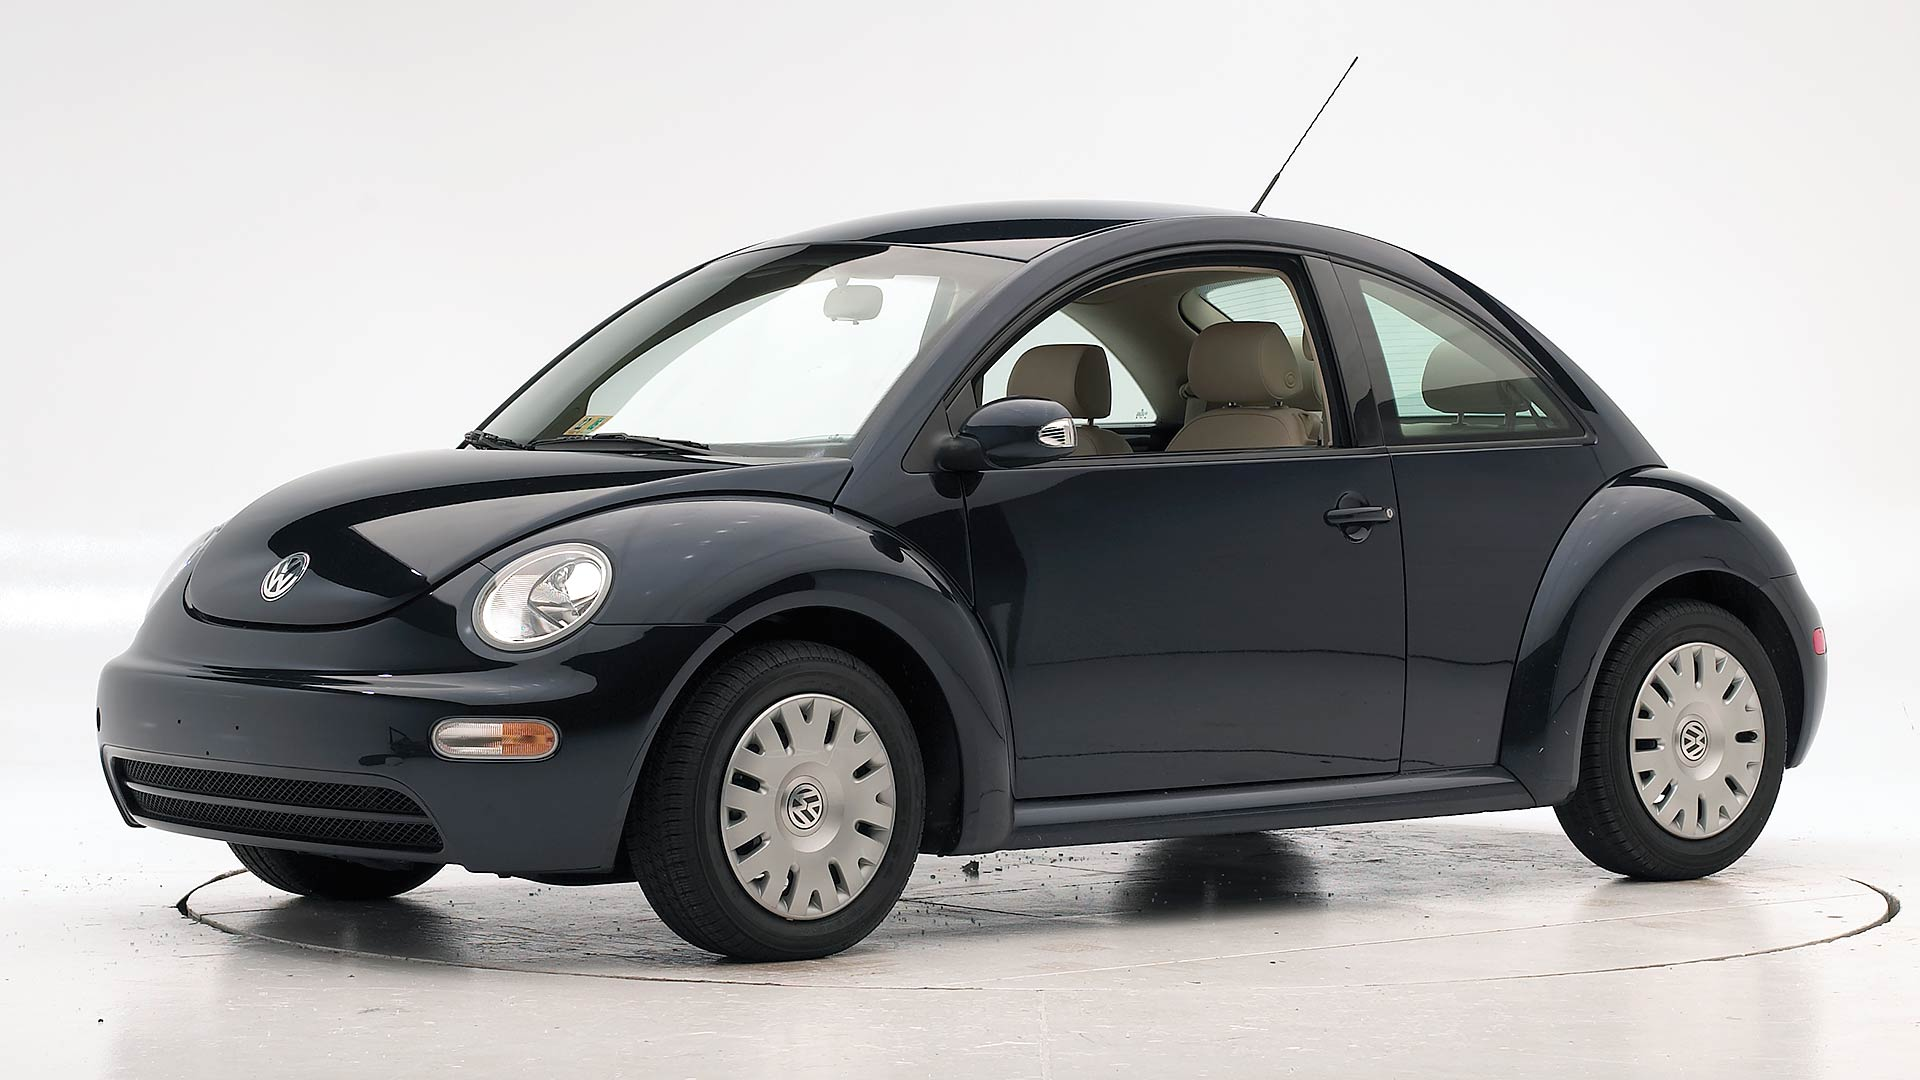 2005 Volkswagen New Beetle 2-door hatchback